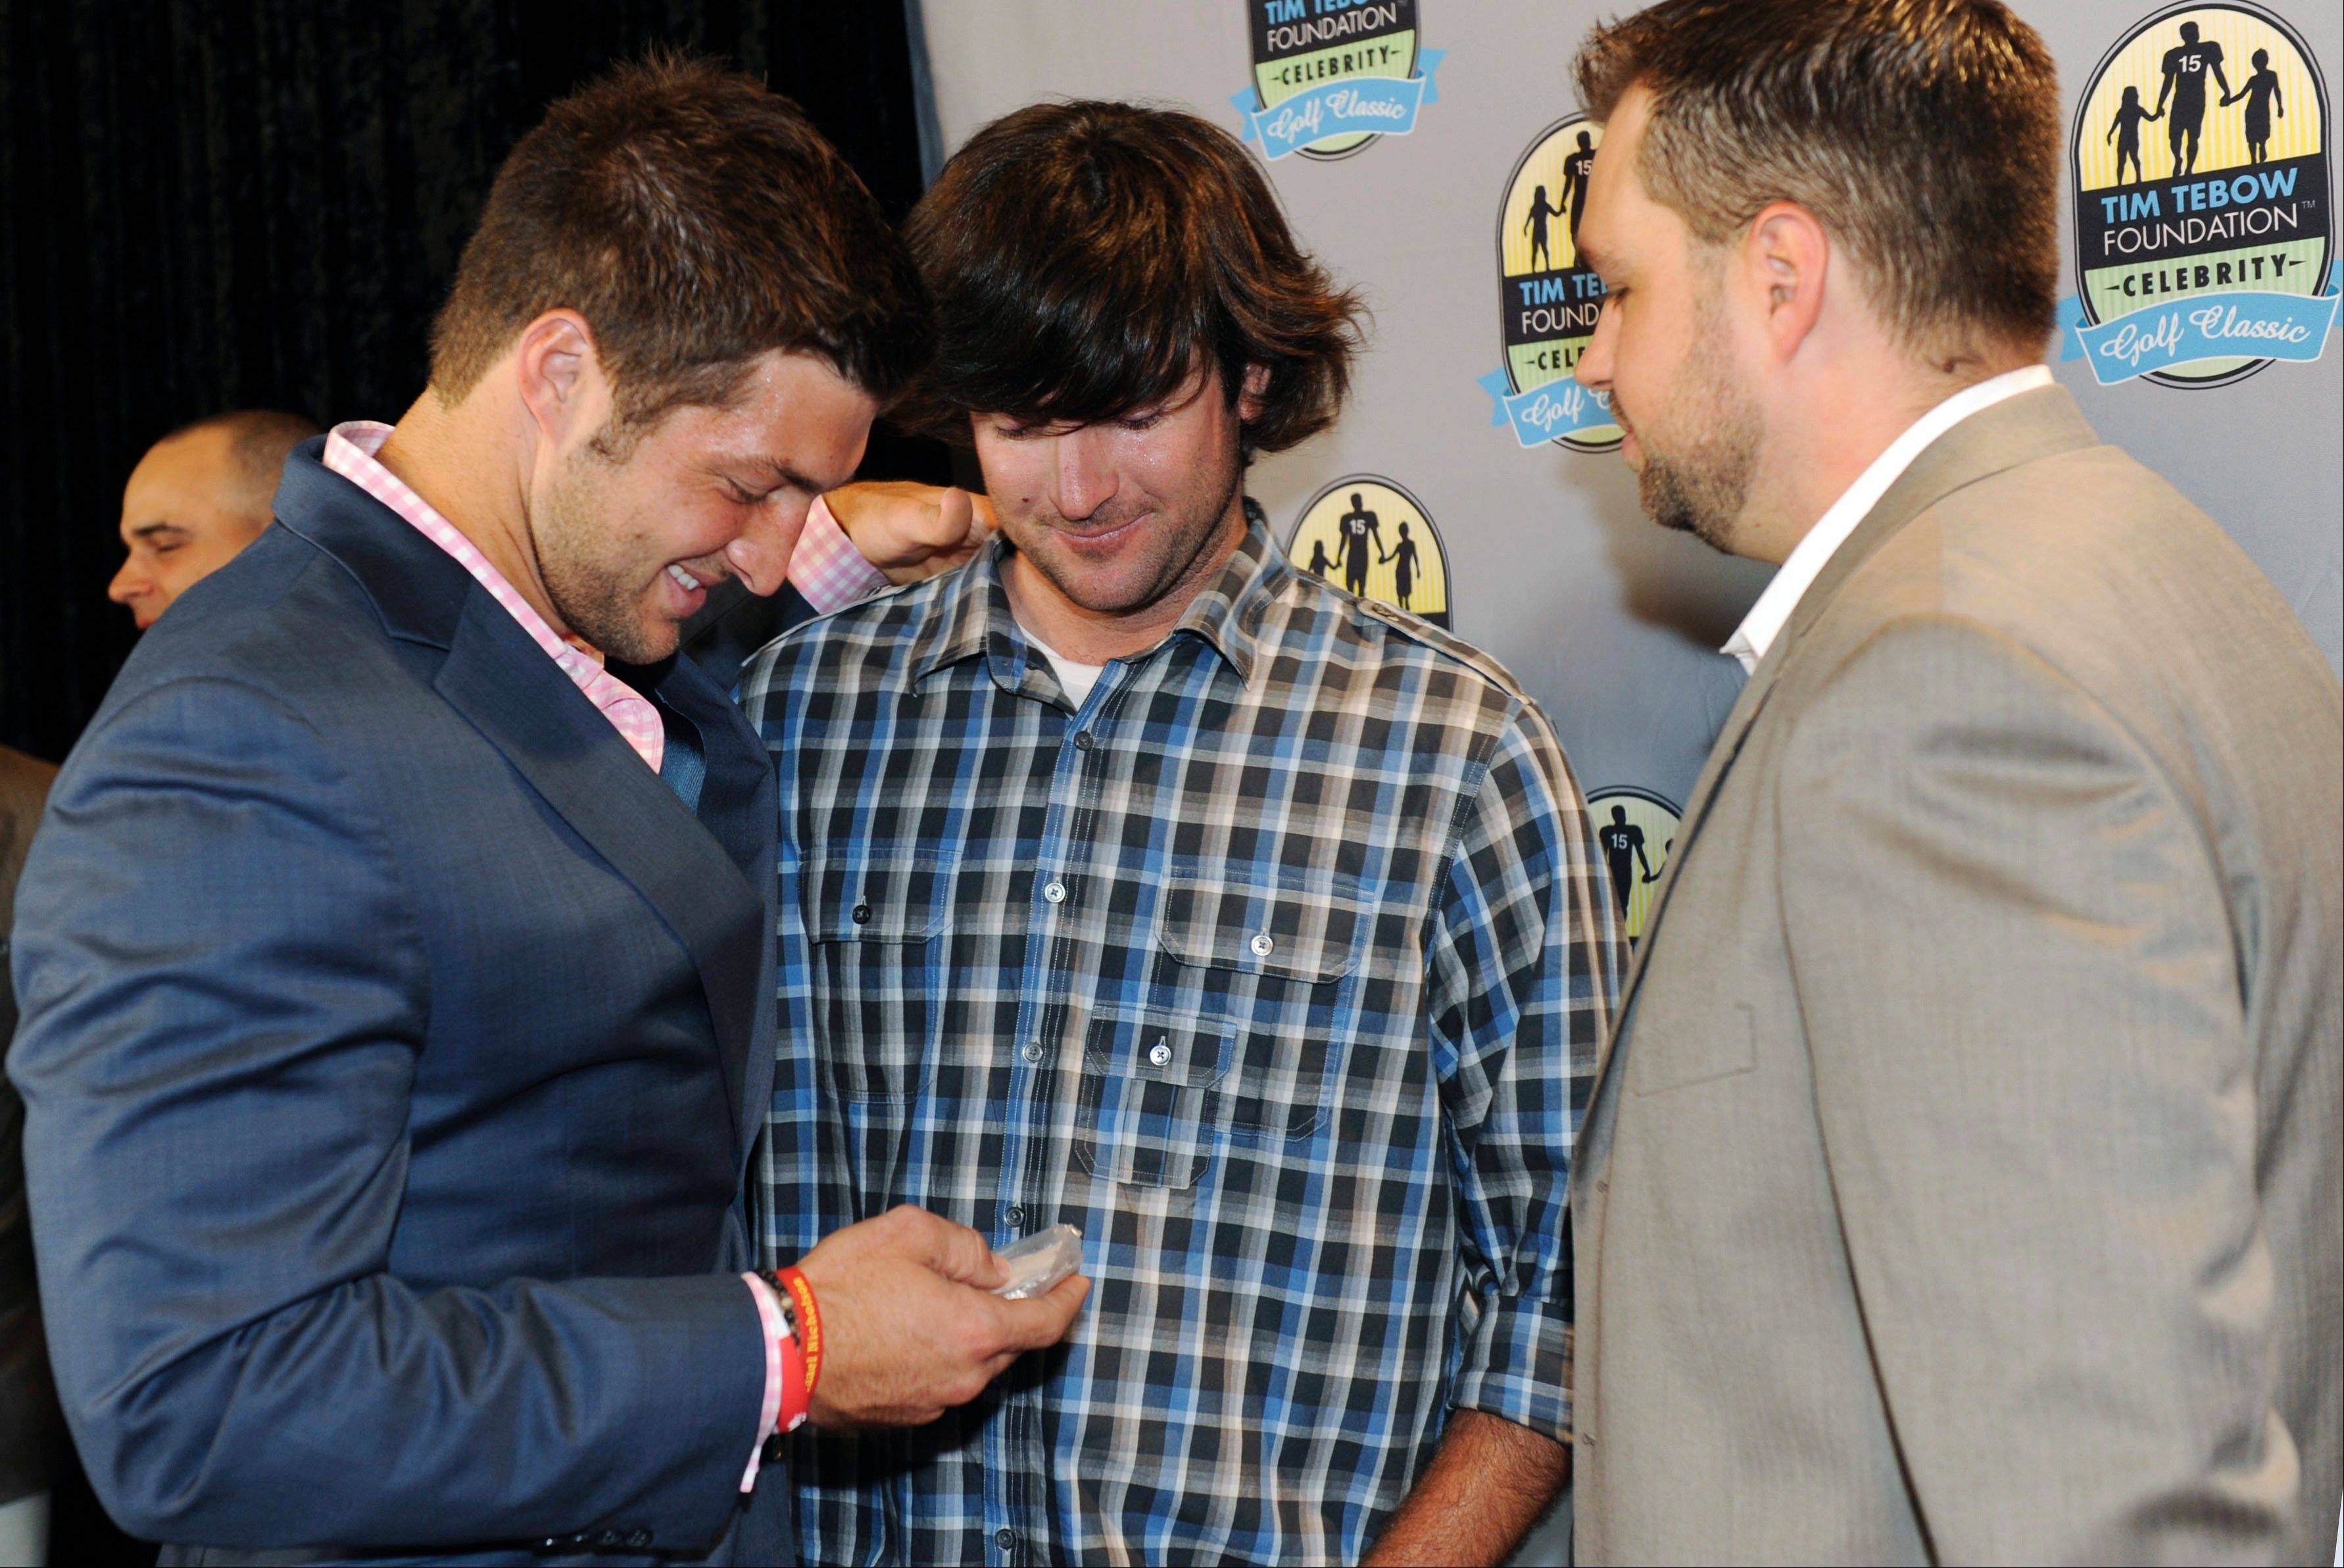 Masters golf champ Bubba Watson, center, presents New York Jets quarterback Tim Tebow, left, with his Masters golf tournament badge bearing number 15. Watson, who leads the Ryder Cup point standings, made the donation for the Tim Tebow Foundation Celebrity Golf Classic last Friday.